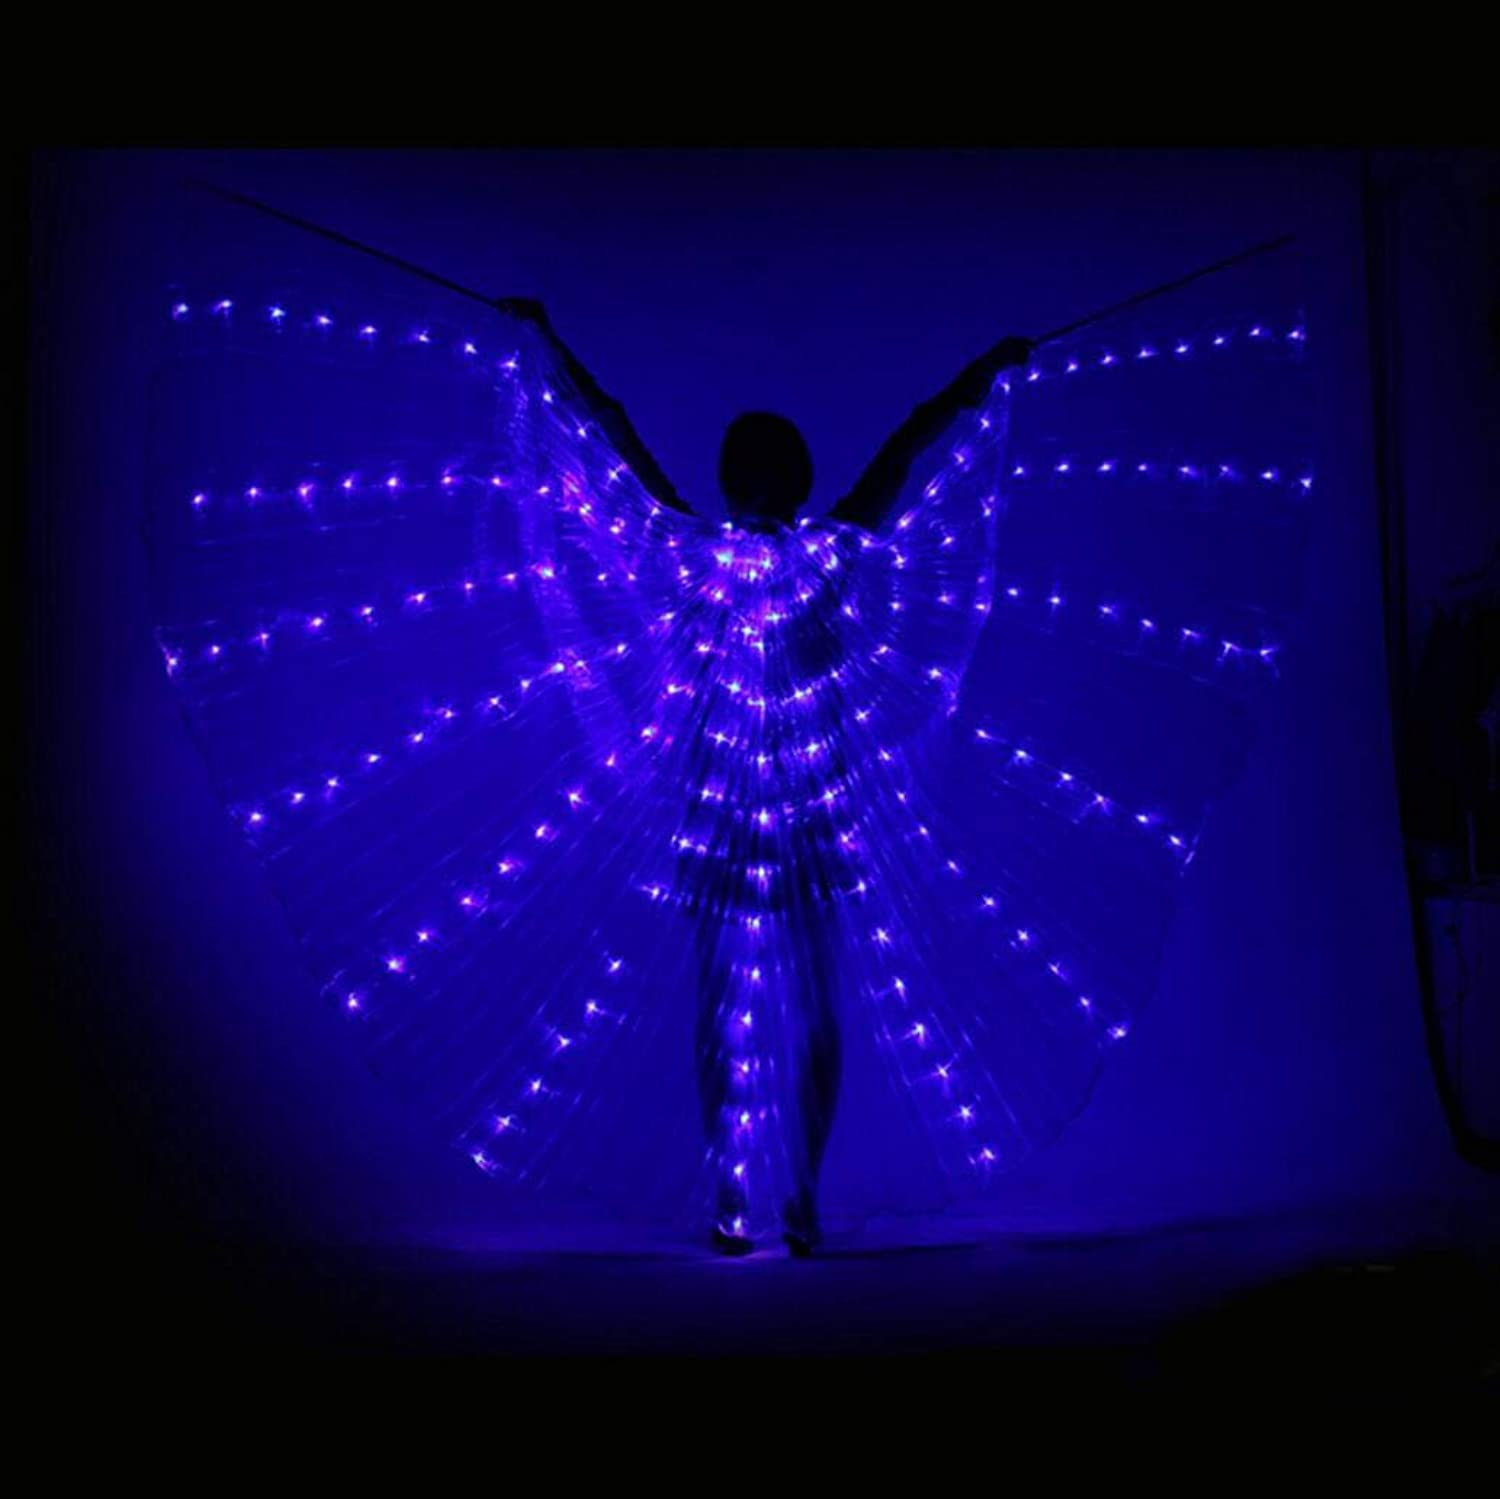 Dance Fairy Opening Belly Dance LED Isis Wings with Sticks RodsWings 360 LED Luminous Light Up Stage Performance Props Passed CE, FCC CertificationMulticolor